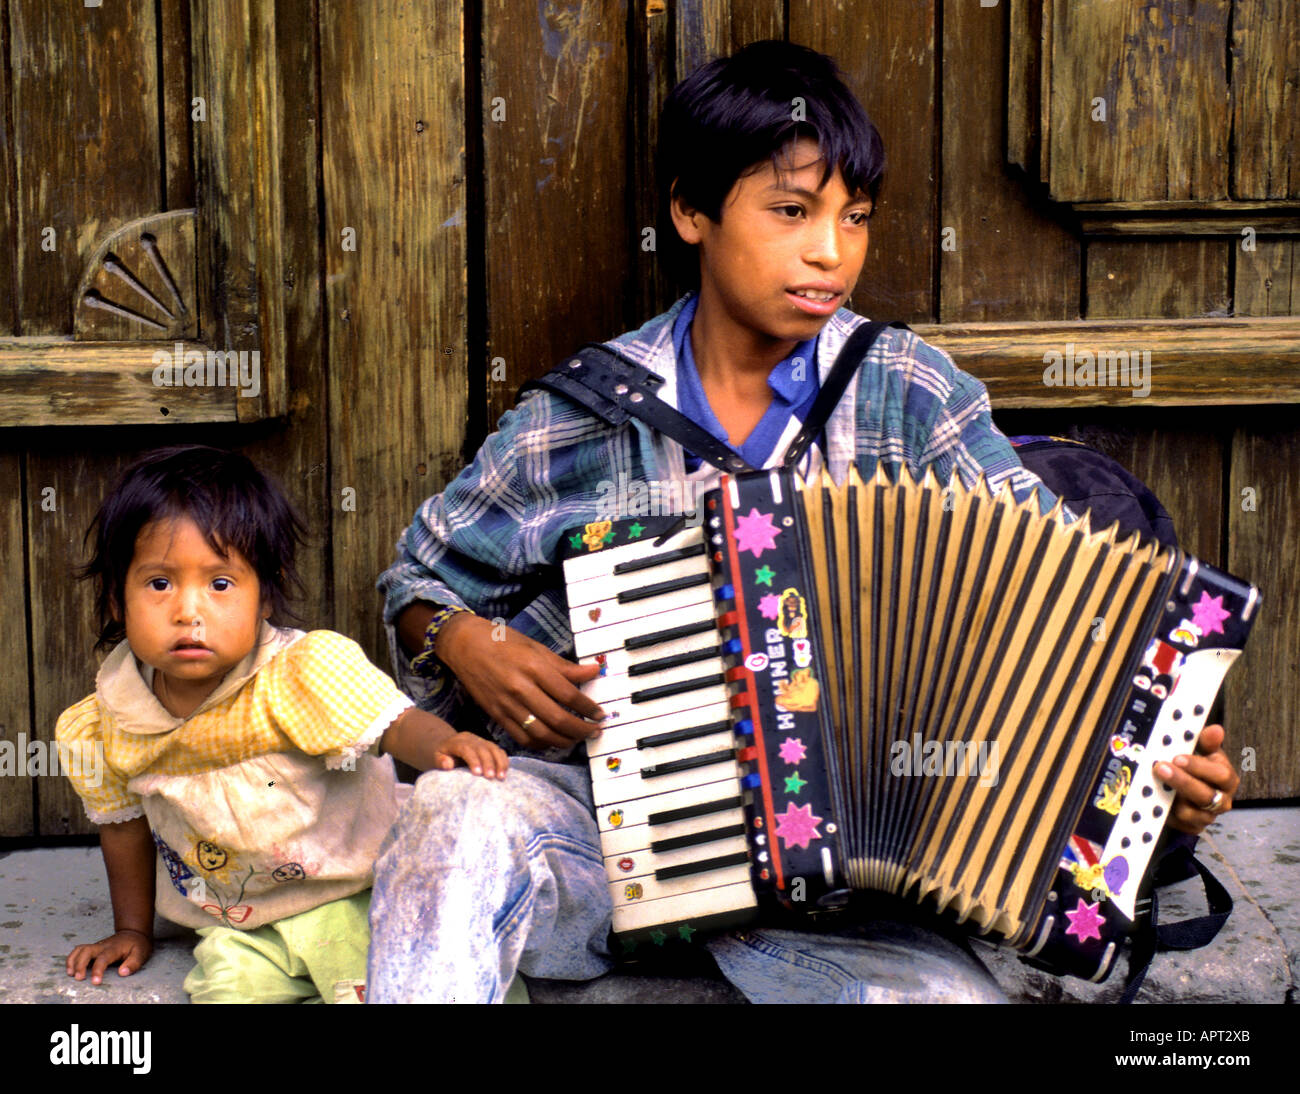 Mexican Music Accordion Stock Photos & Mexican Music